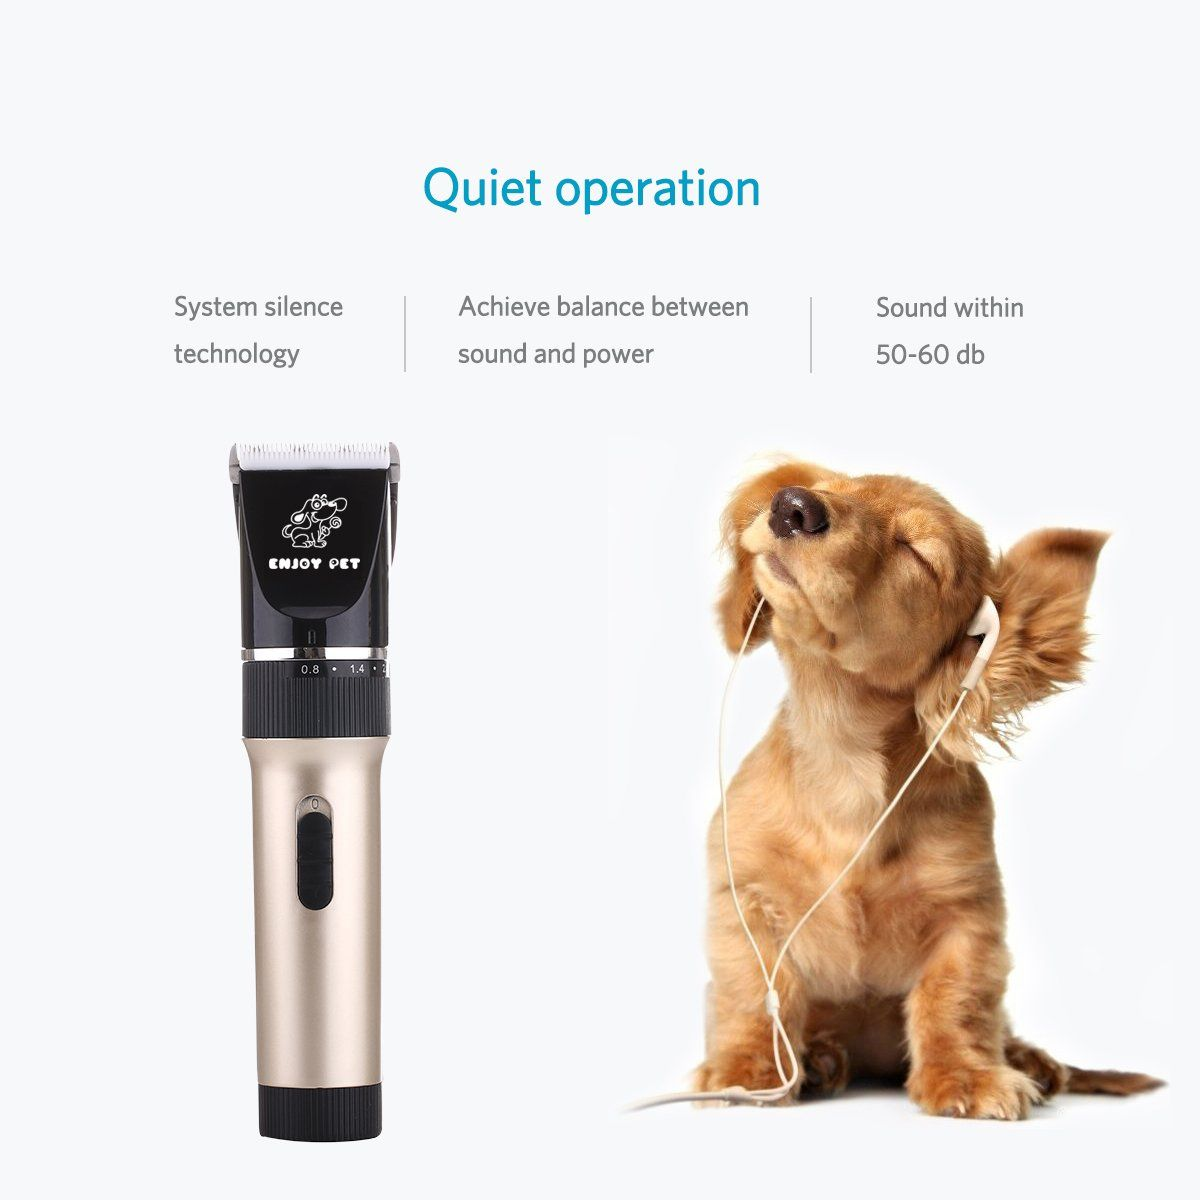 Enjoy Pet Dog Clippers Cat Shaver Professional Hair Grooming Clippers Detachable Blades Cordless Rechargeable W Dog Clippers Dog Grooming Dog Grooming Supplies